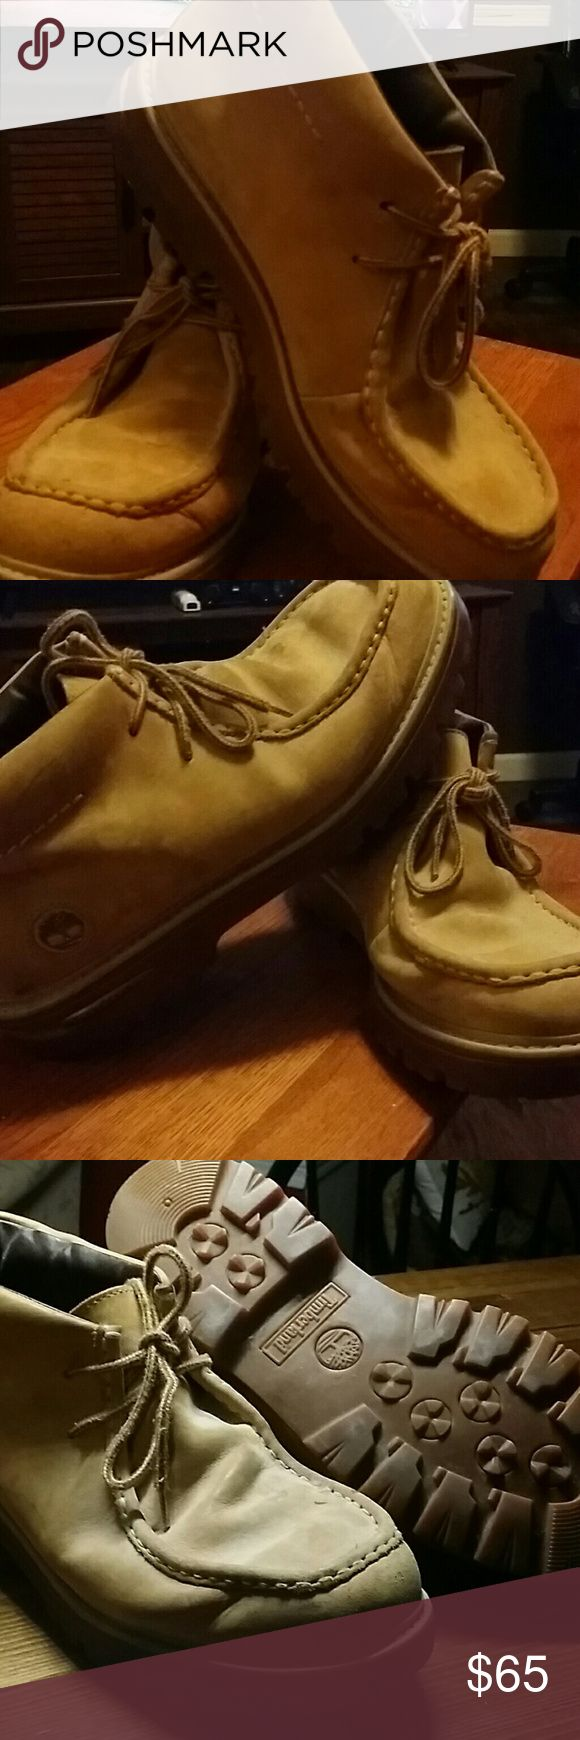 Timberland hiking boots Worn maybe twice been in storage timberland Shoes Boots